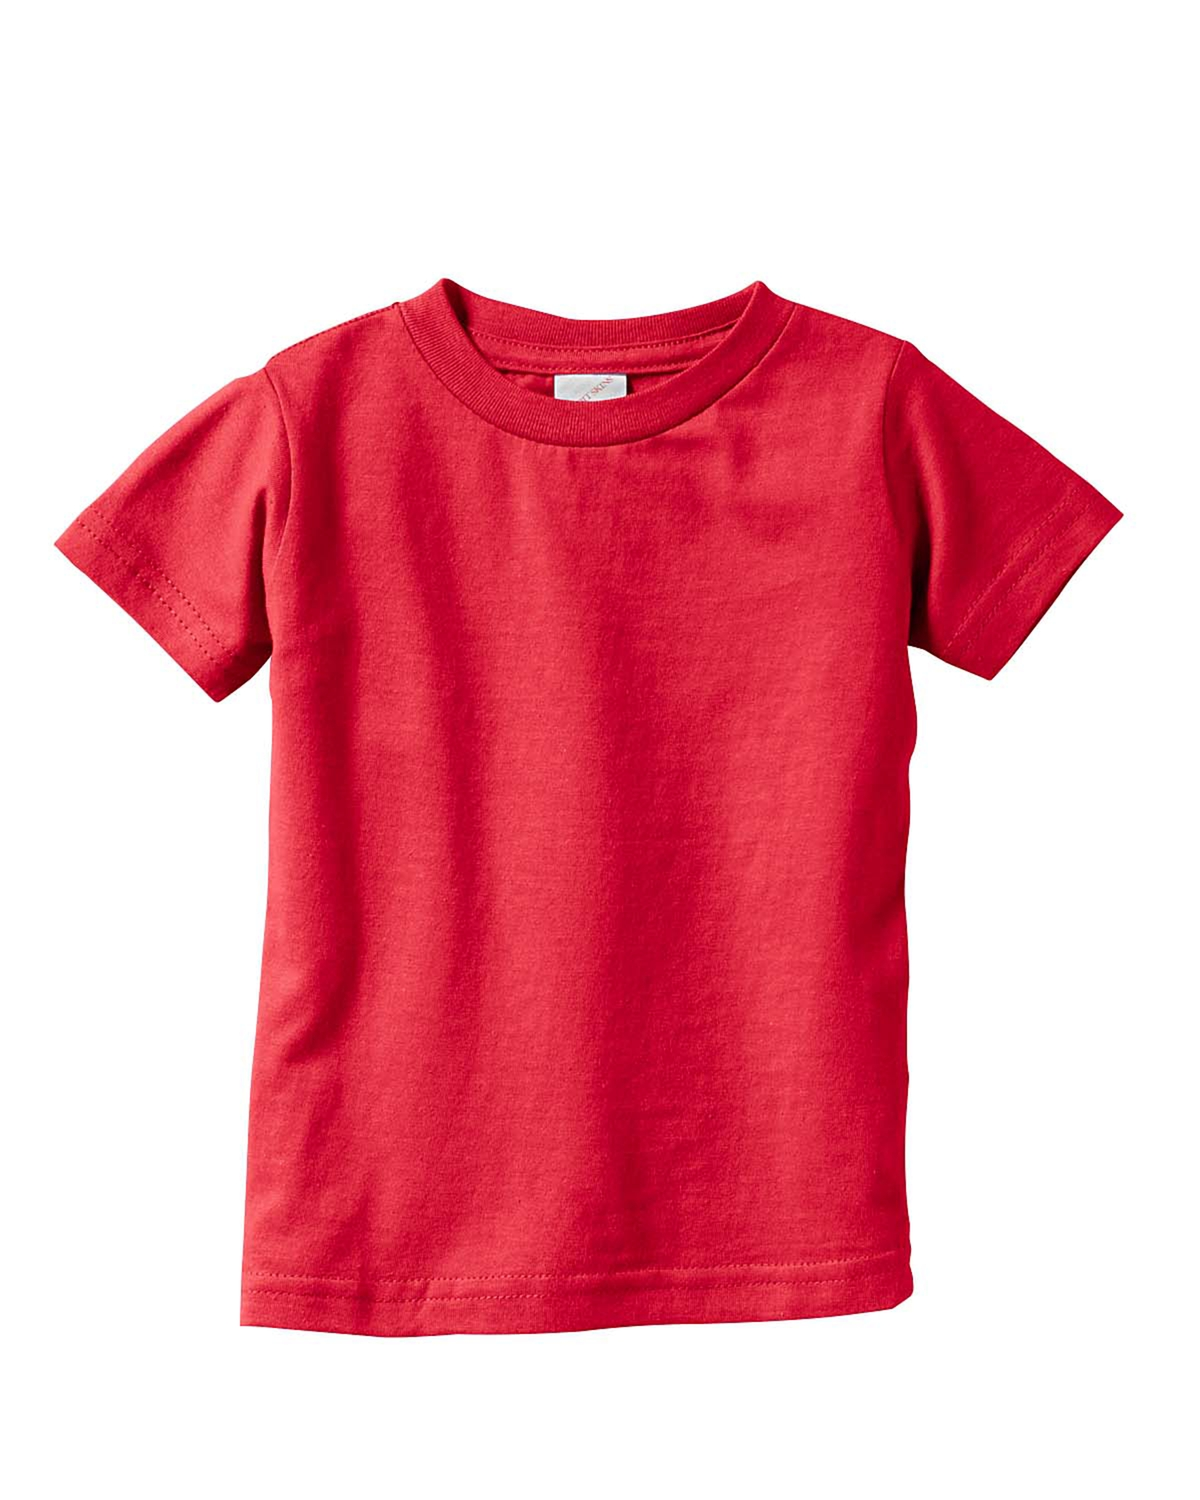 Rabbit Skins Infants4.5 oz. Fine Jersey T-Shirt-3322